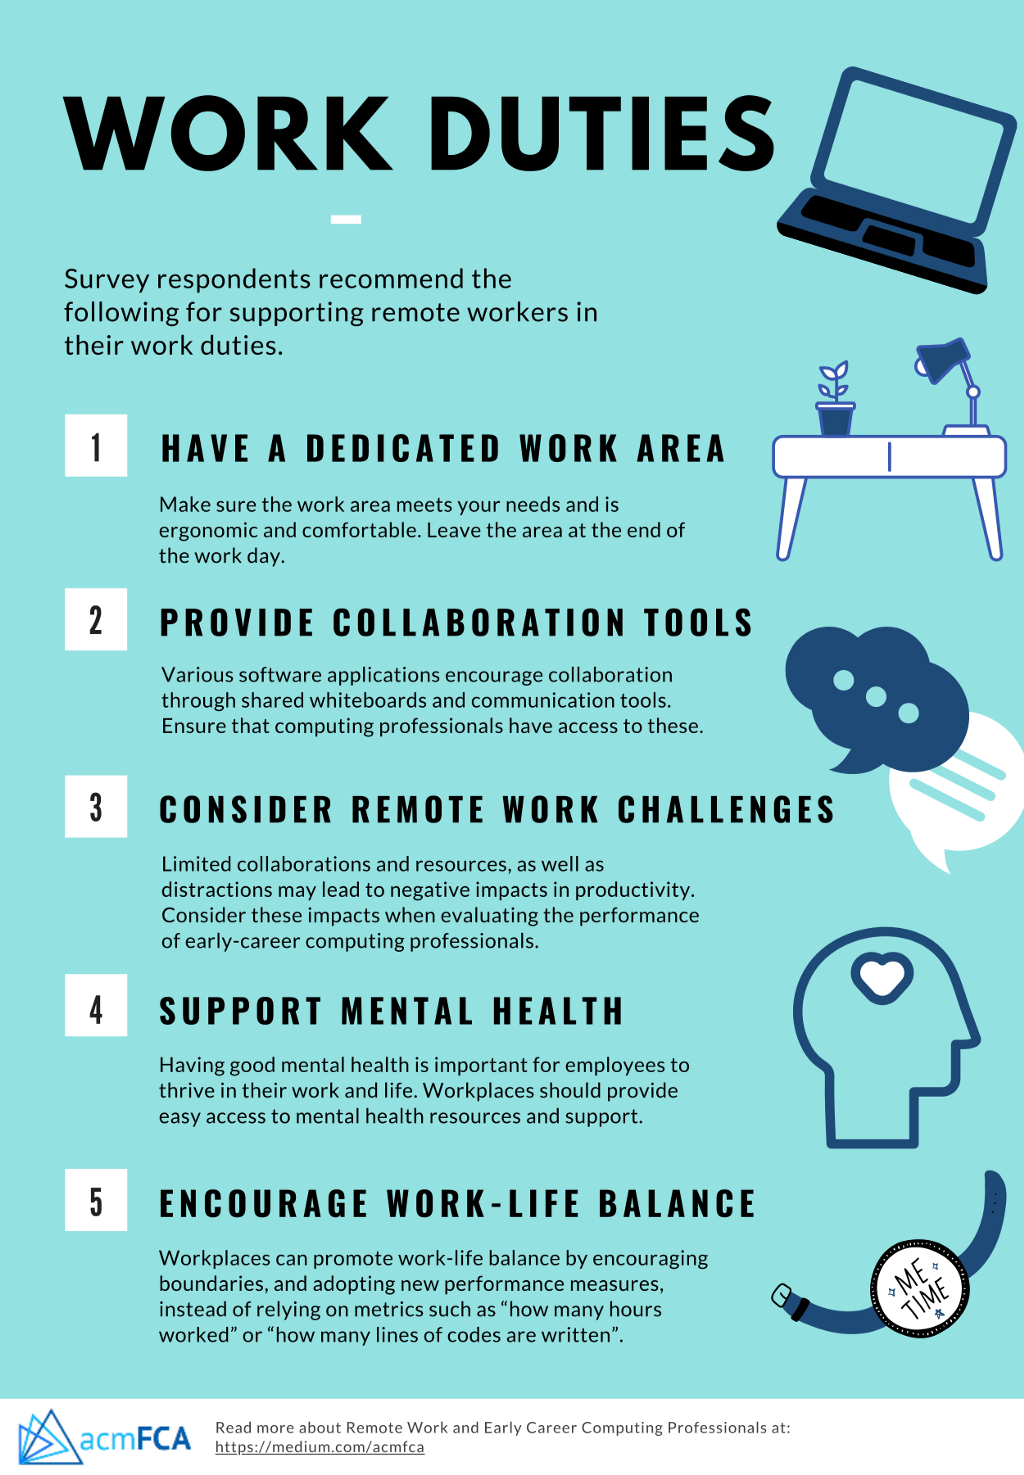 Have a dedicated work area, provide collaborative tools, support mental health and encourage work life balance.